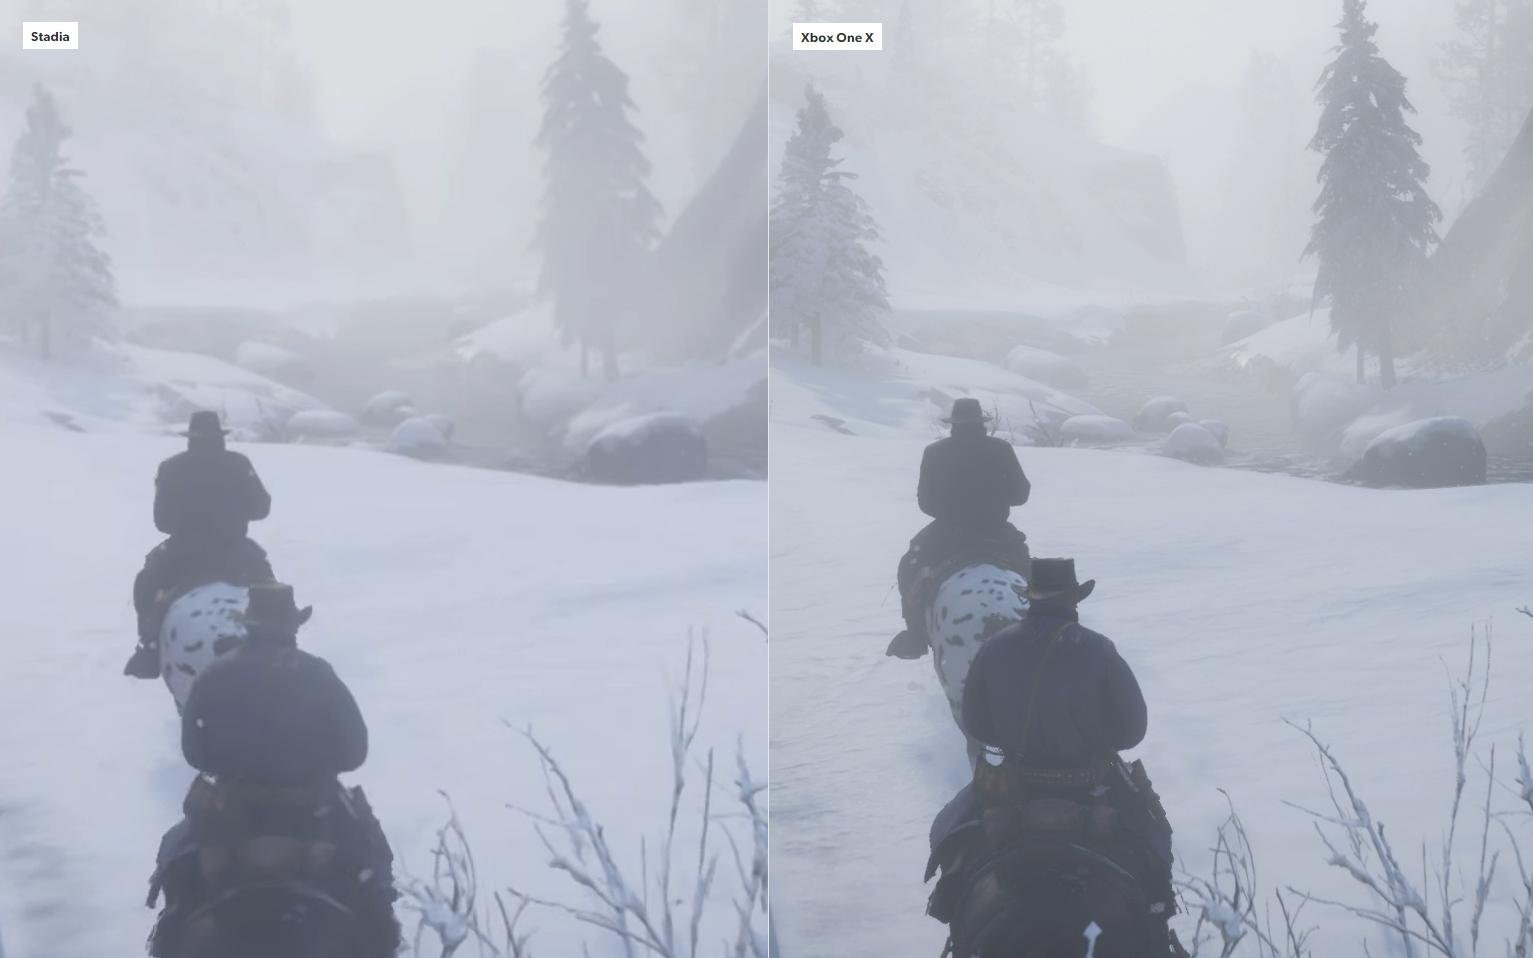 Google Stadia vs. Xbox One X Red Dead Redemption 2 - 2